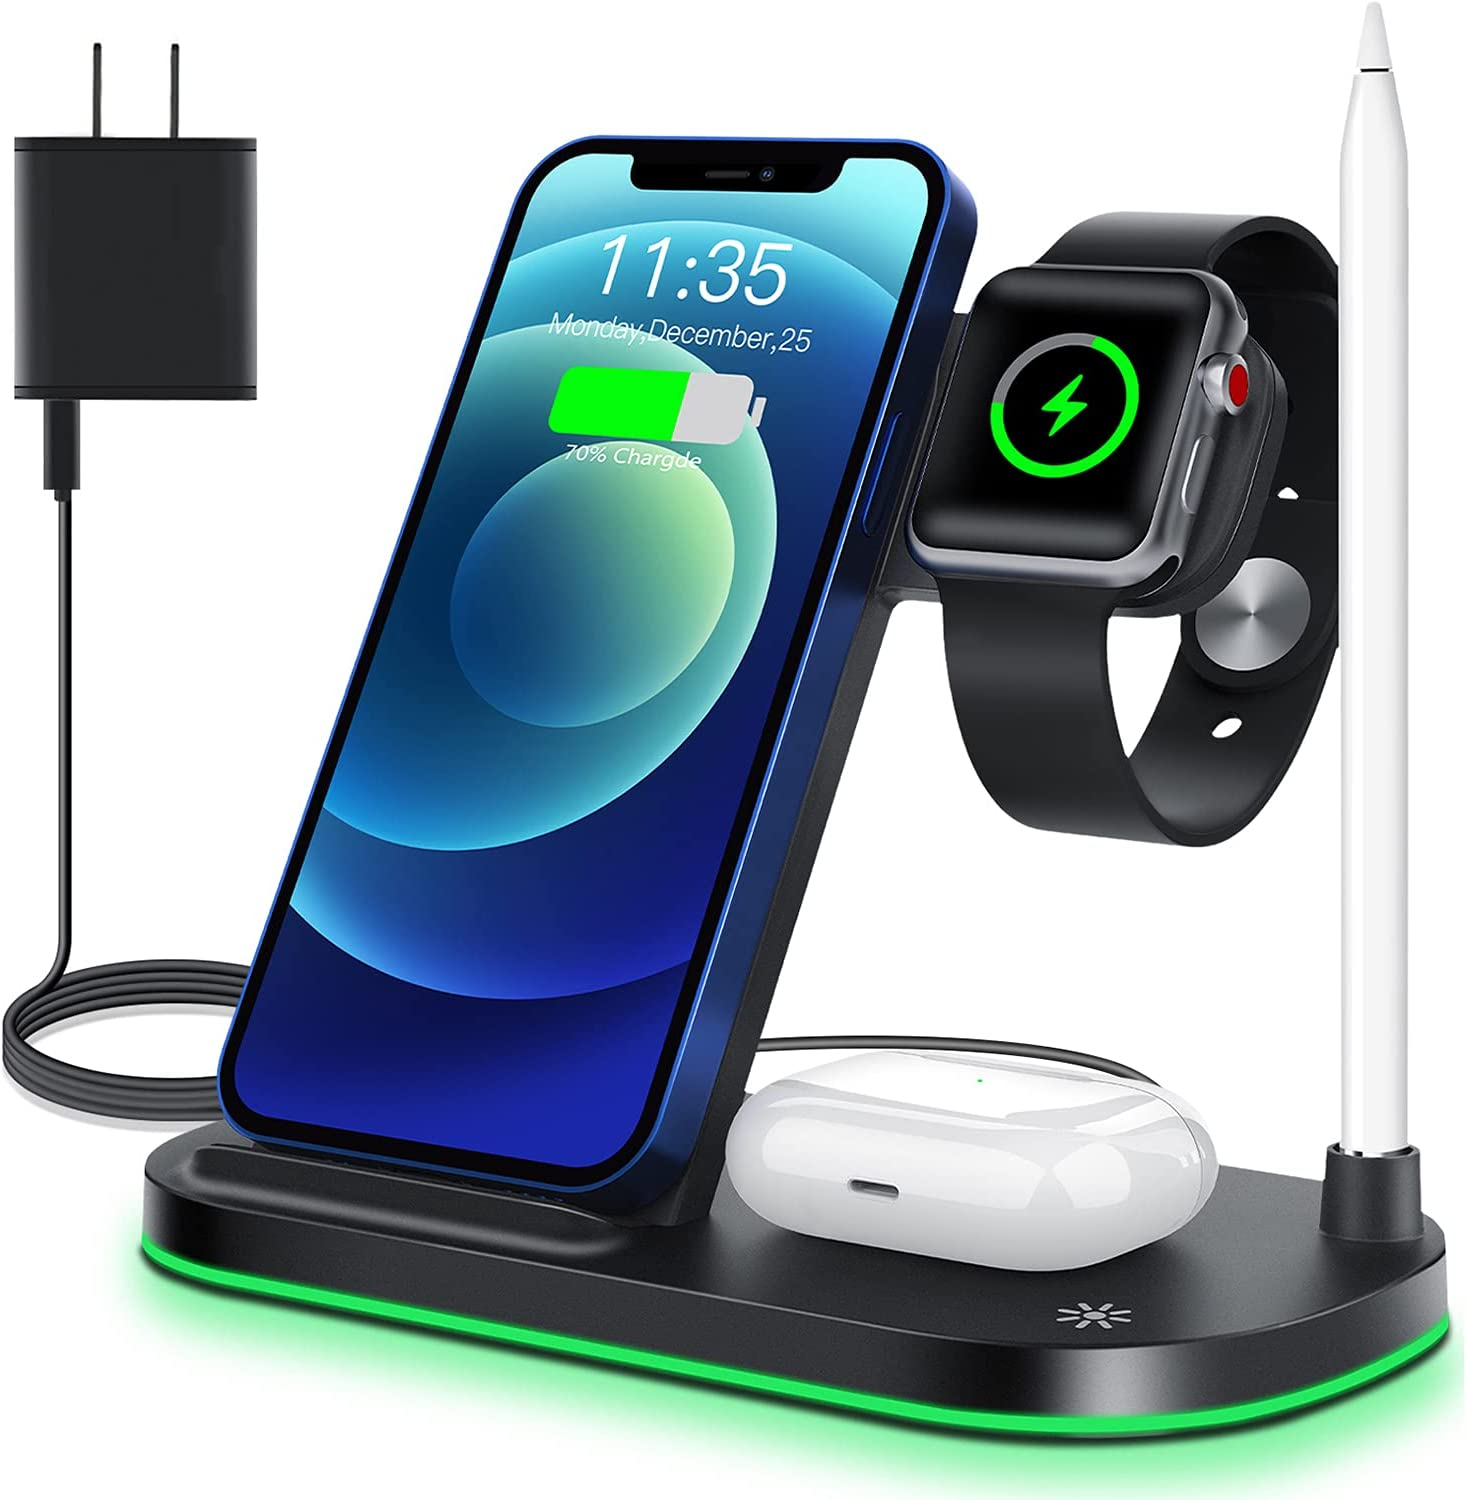 WAITIEE Wireless Charger, 4 in 1 Wireless Charging Stand for Apple Watch Series SE,6,5,4,3,2,1, AirPods Pro and Apple Pencil,15W Fast Dock Charging Station for iPhone 12,11, Pro max, Xr, Xs max, X